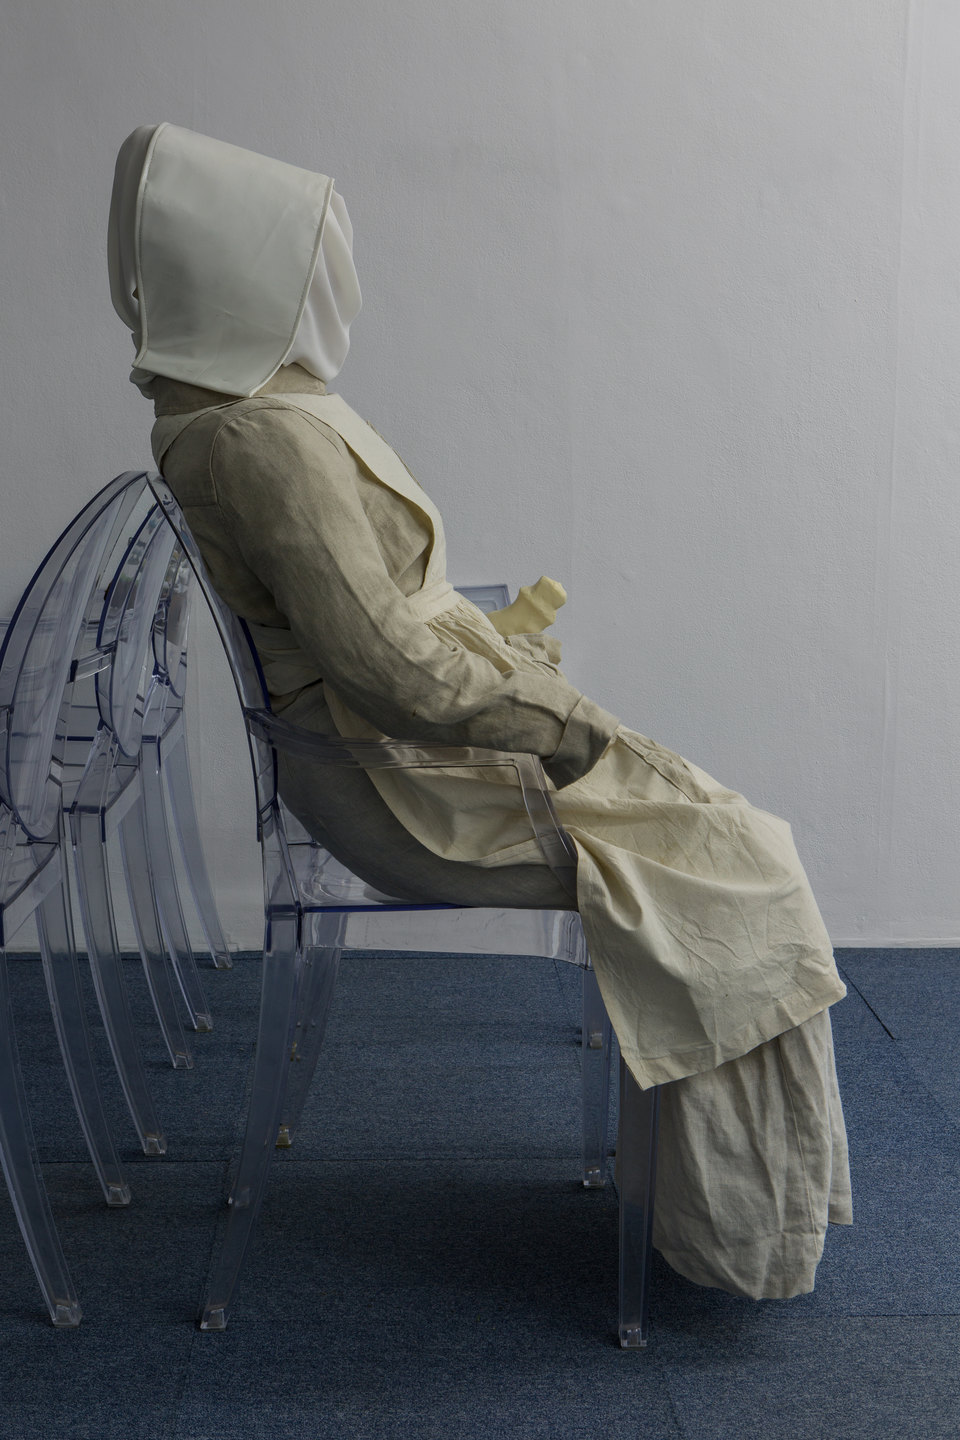 Angharad Williams and Mathis Gasser, 'Day Queen', 2018, Hergest:Nant, Cell Project Space